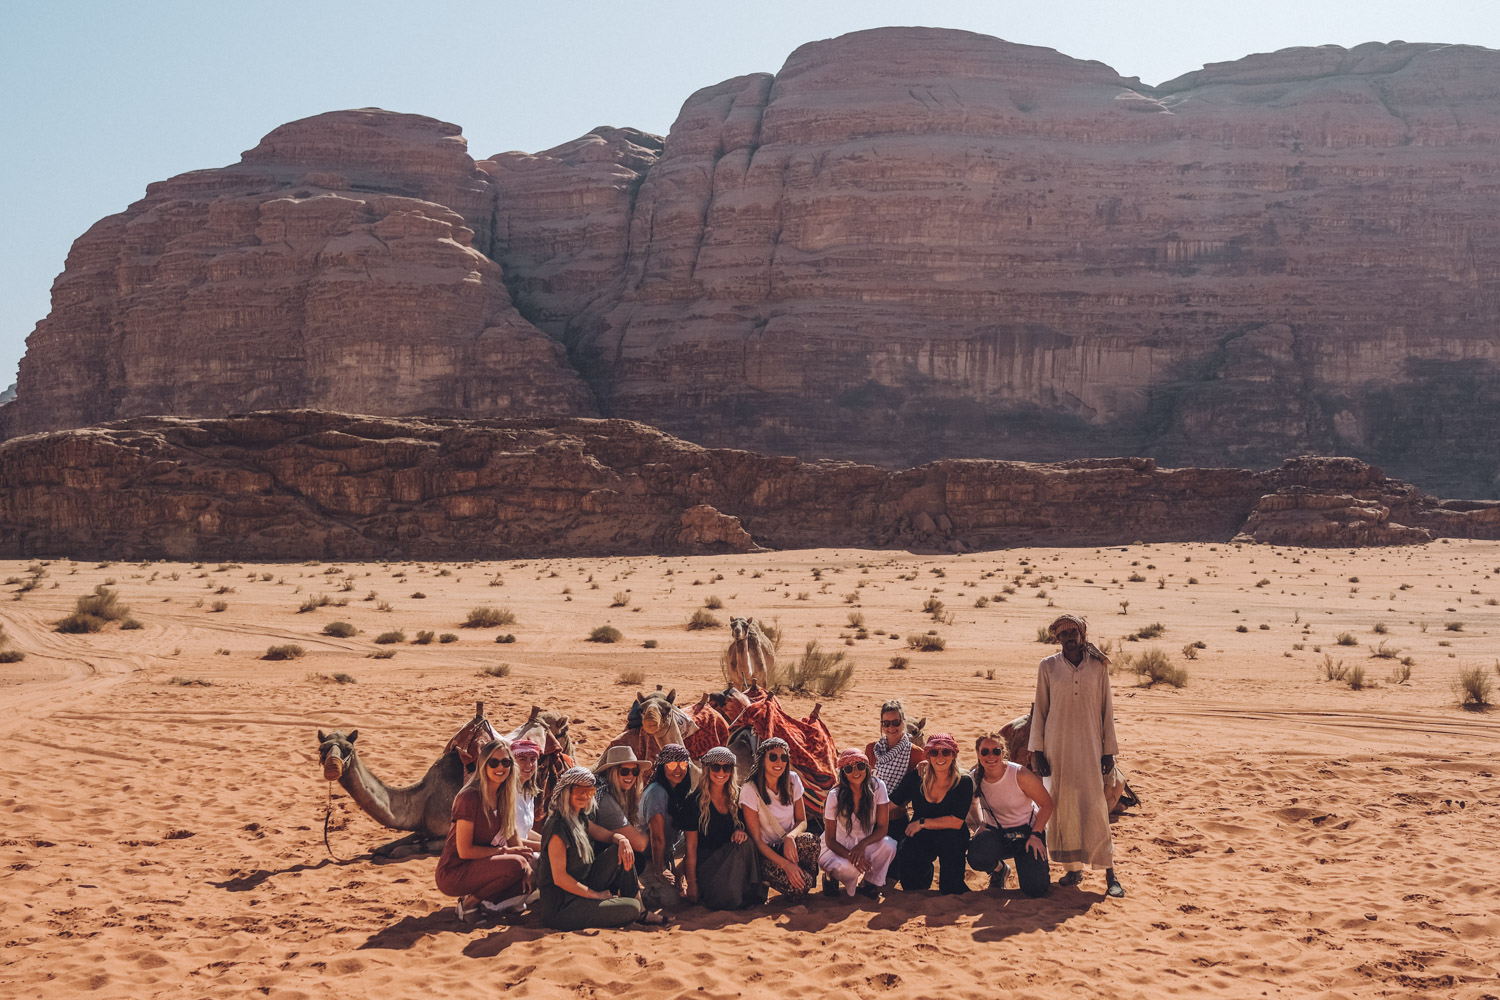 Group excursion to Wadi Rum